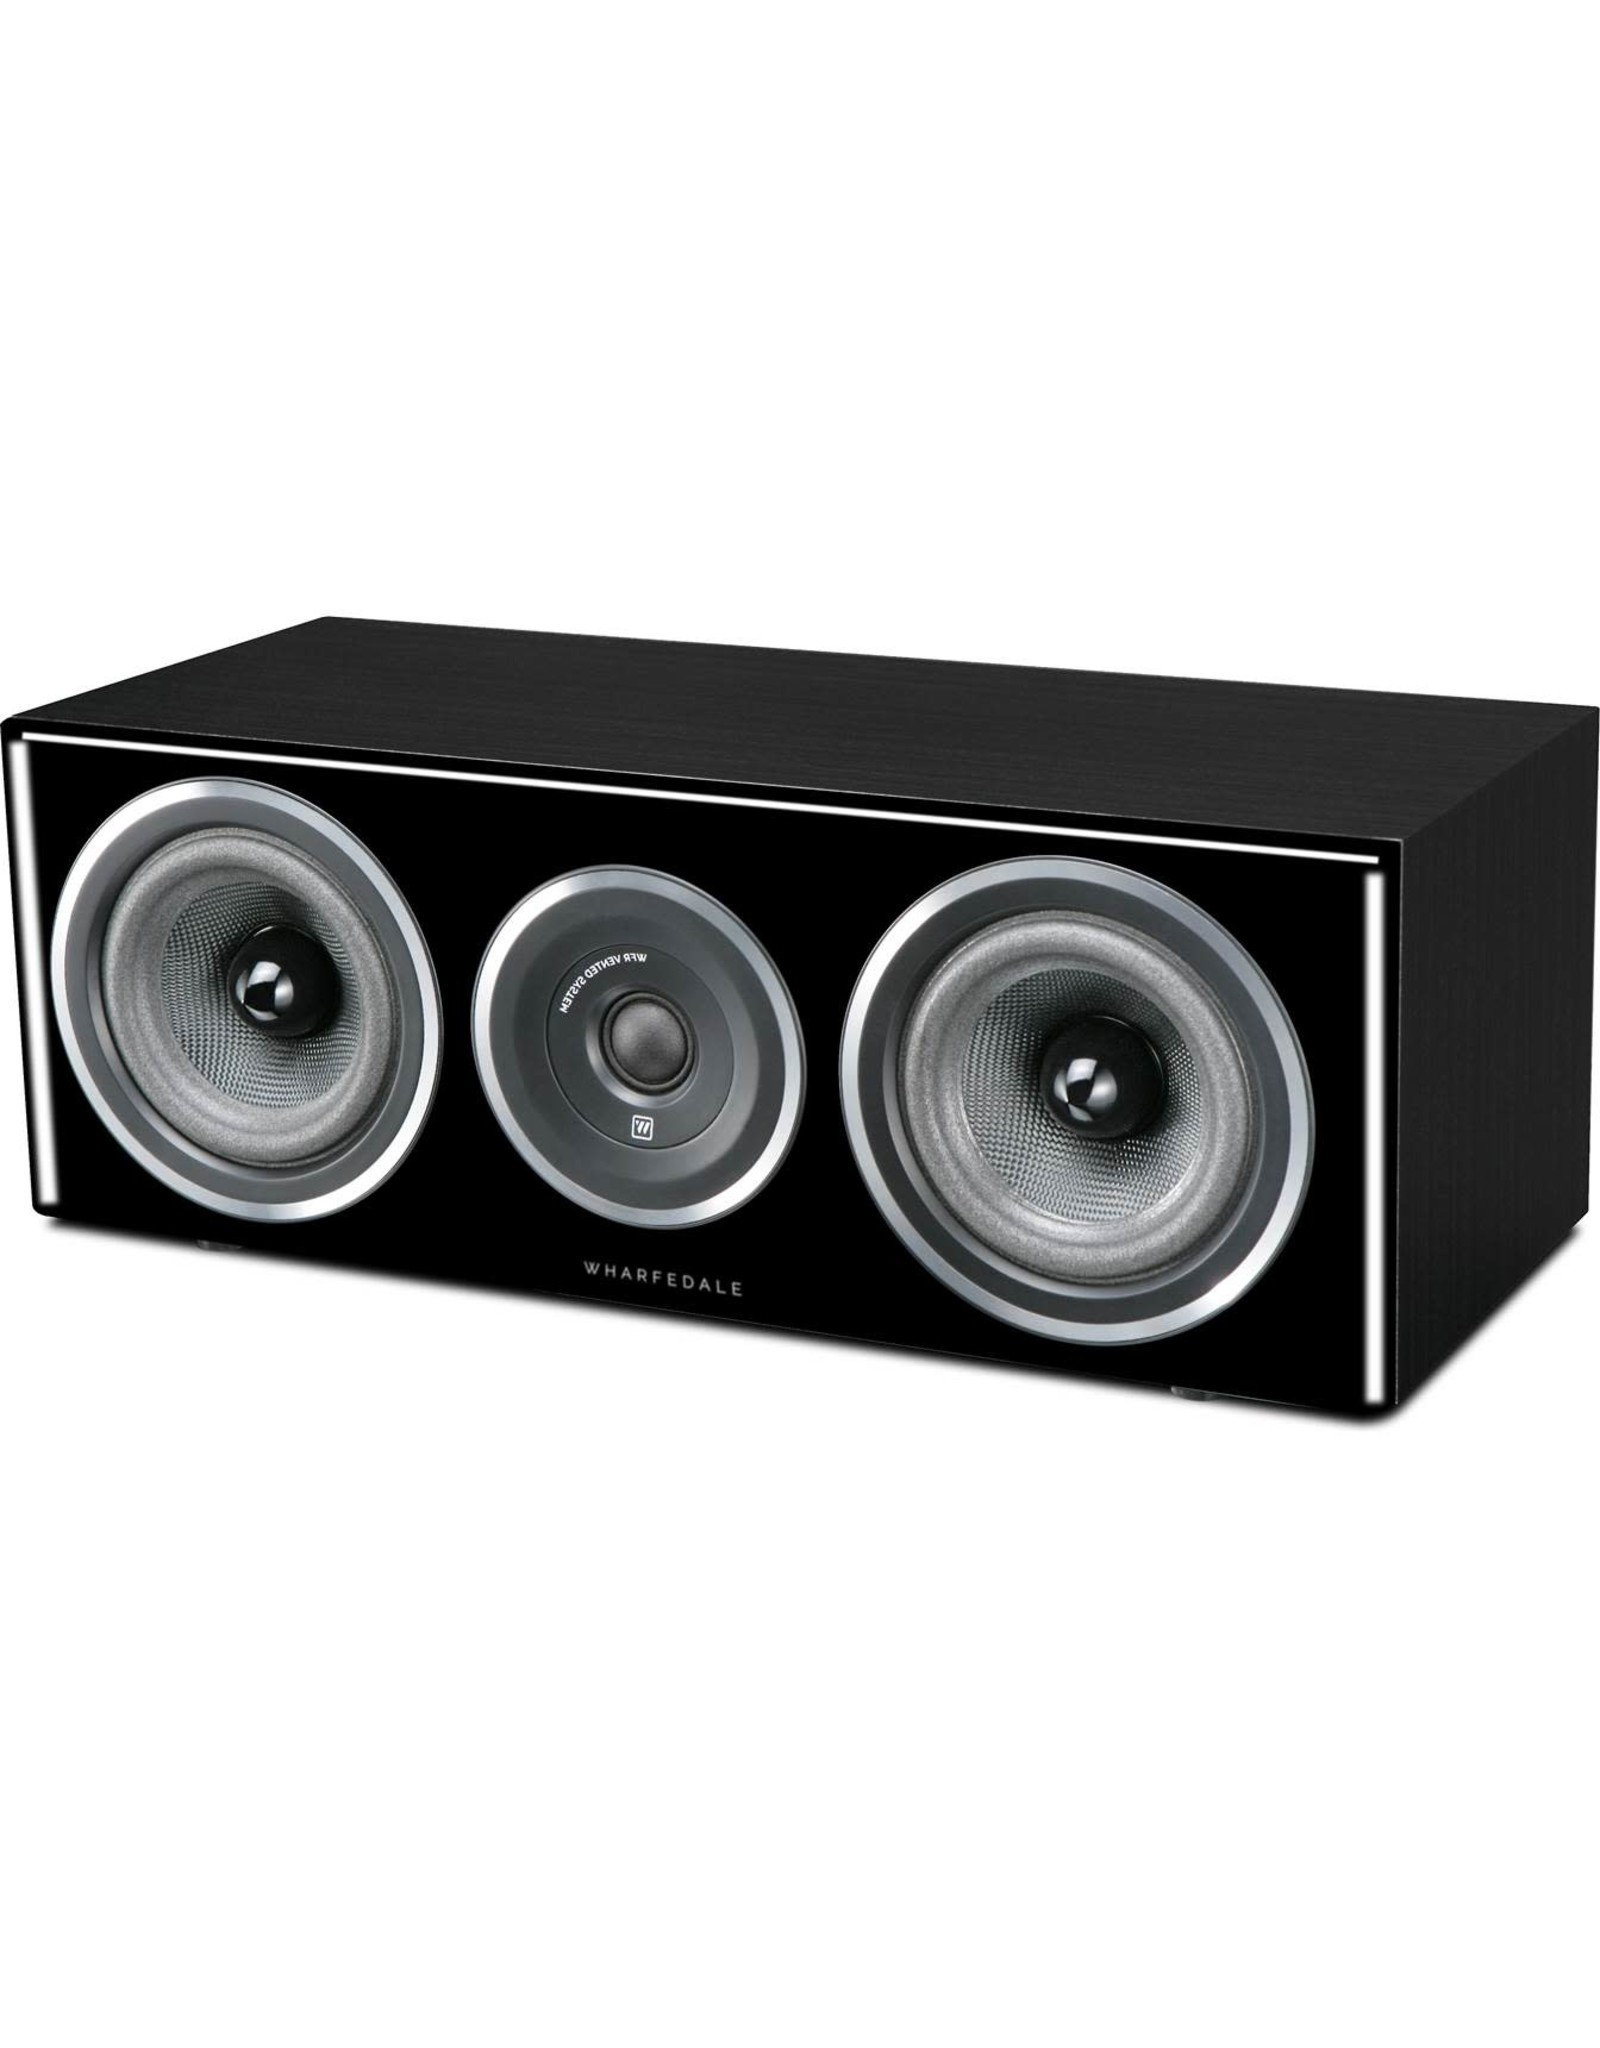 Wharfedale Wharfedale Diamond 11.CS Center Speaker